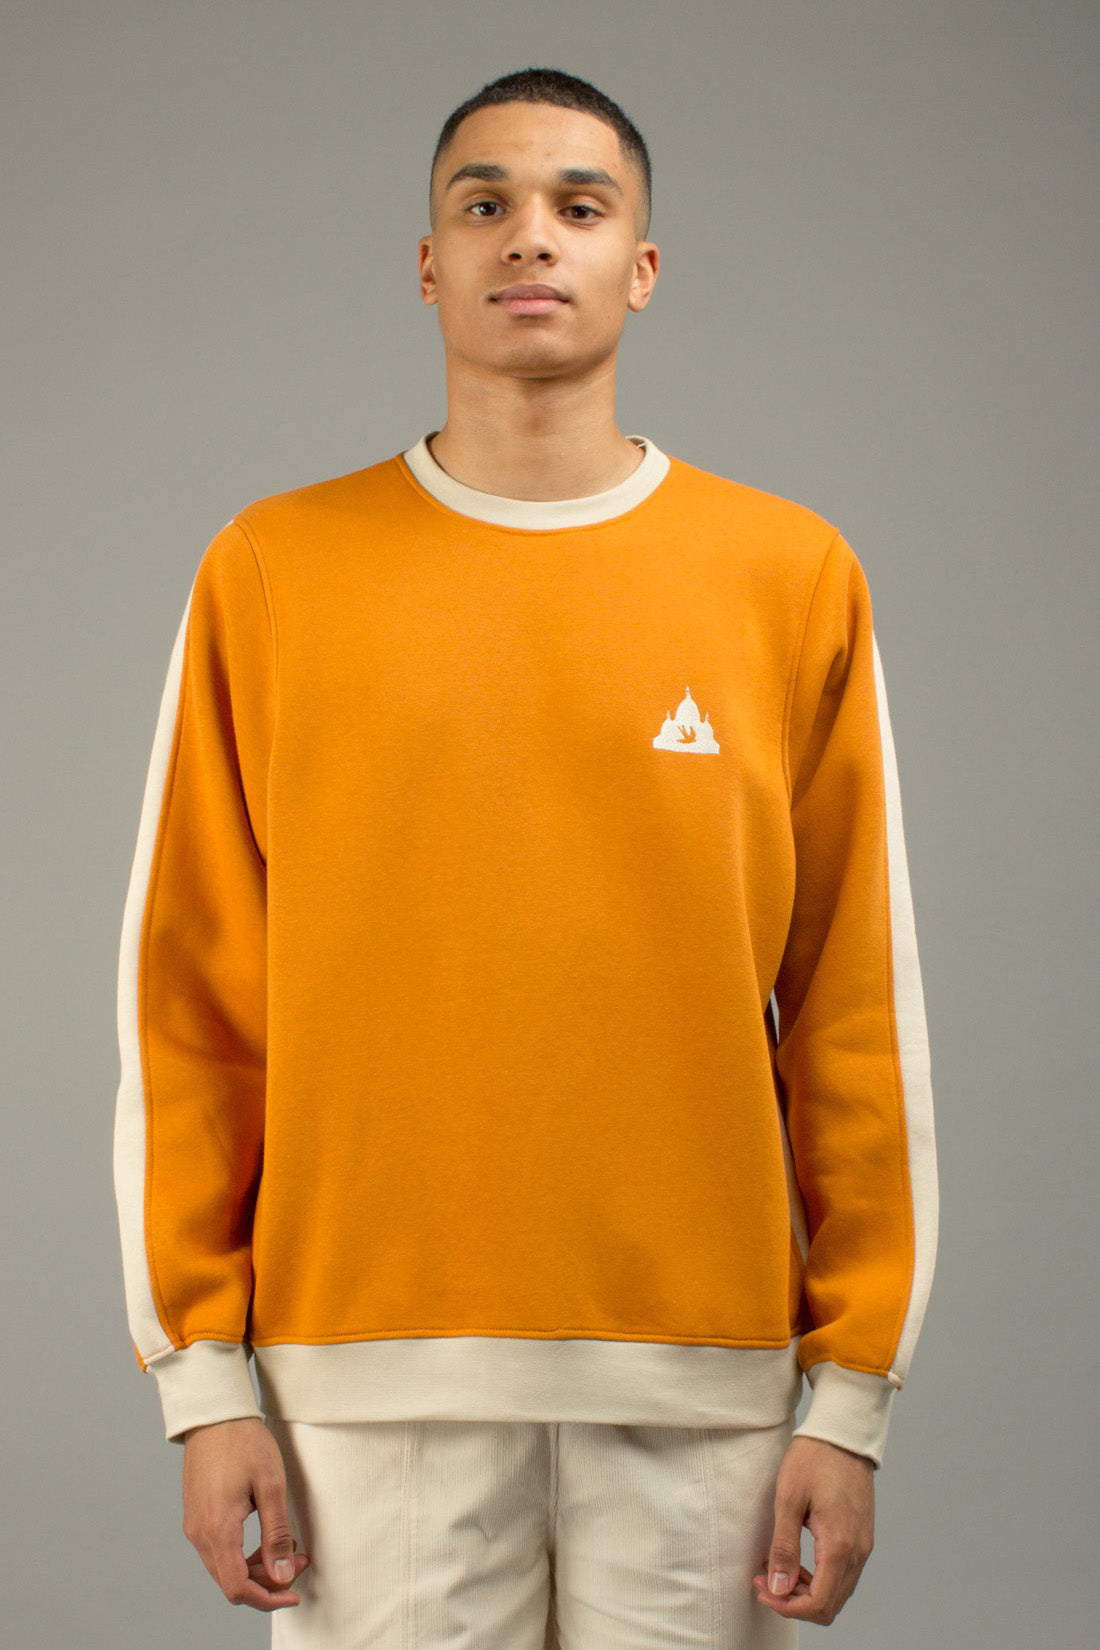 ORANGE COLORBLOCK CREWNECK